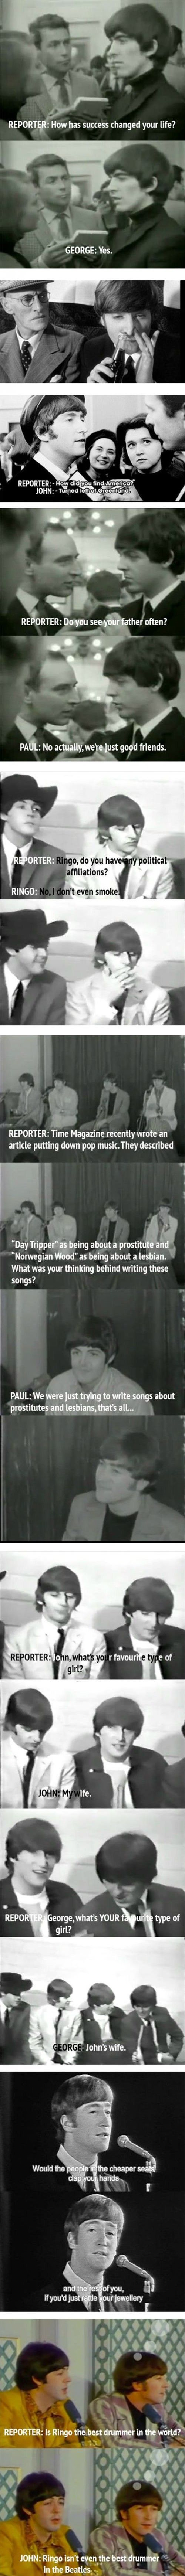 I love The Beatles so much it's unhealthy.